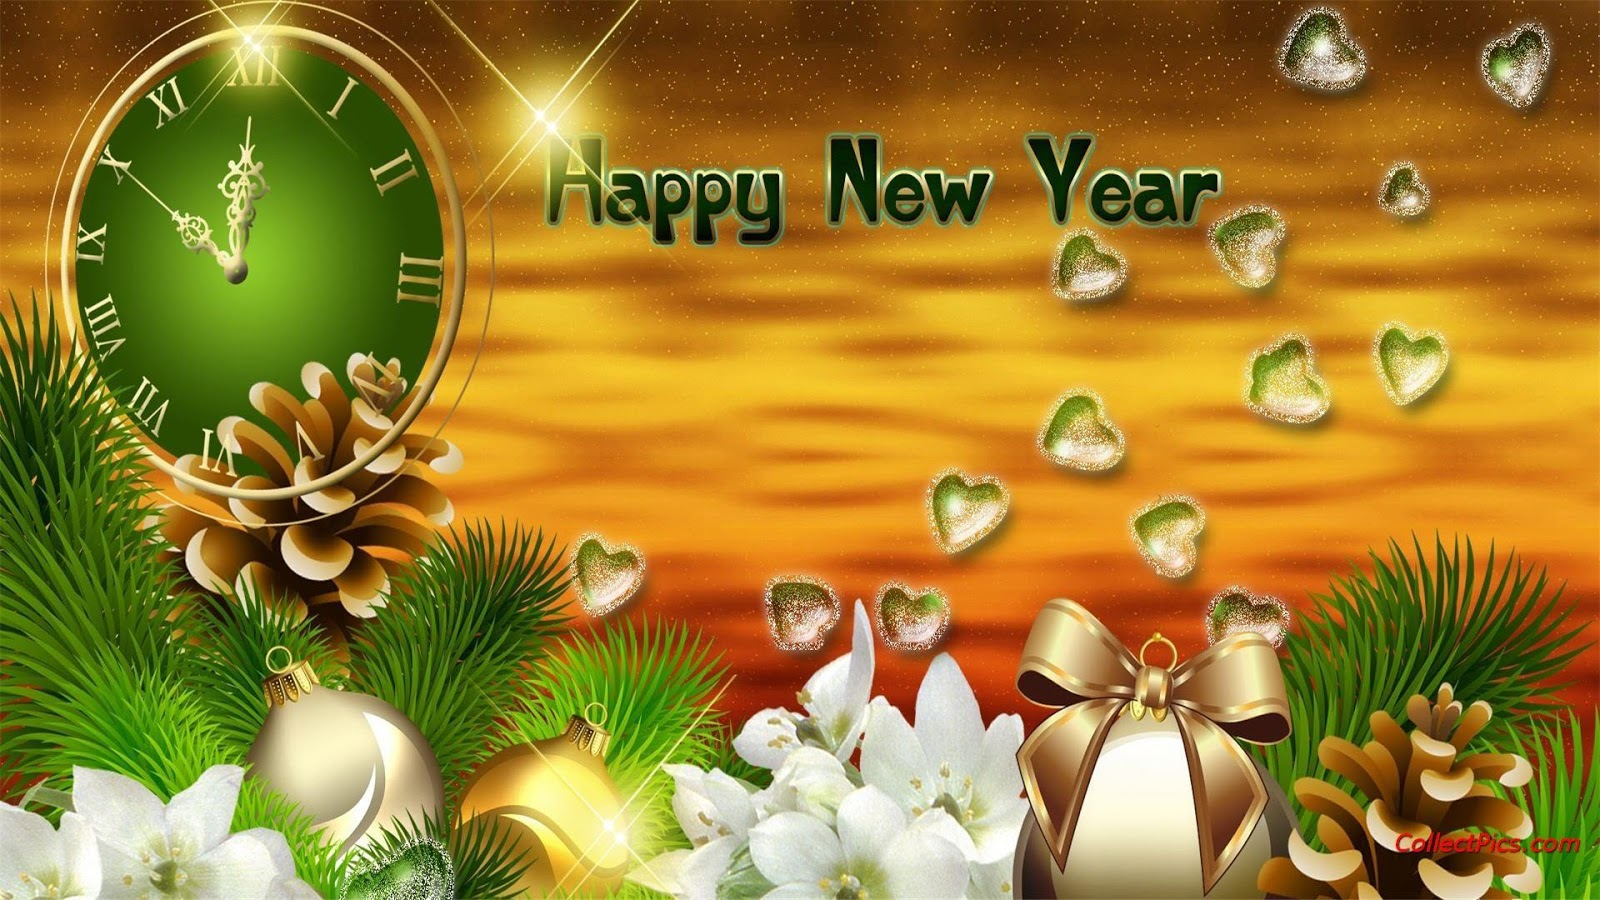 Wallpaper Download New Year